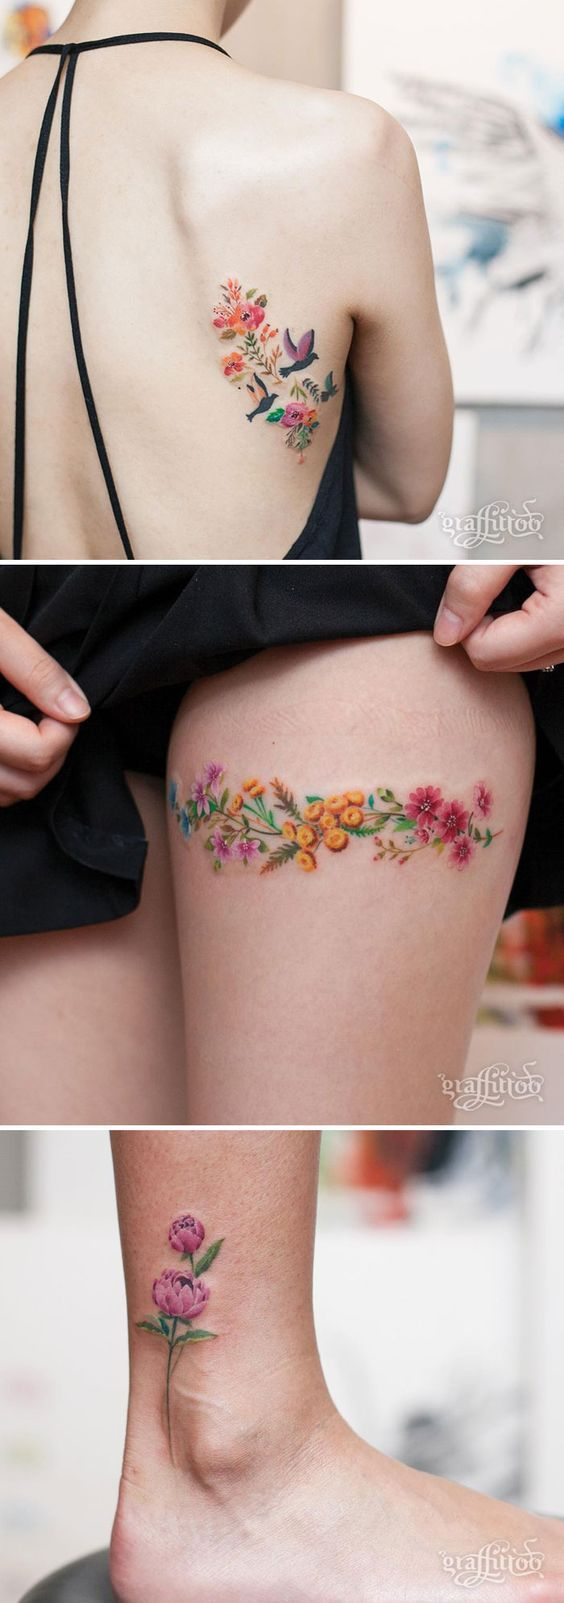 Flower thigh tattoos women fashion and lifestyles - 19 Amazing Tattoo Artists That Will Change Your Instagram Feed For The Better